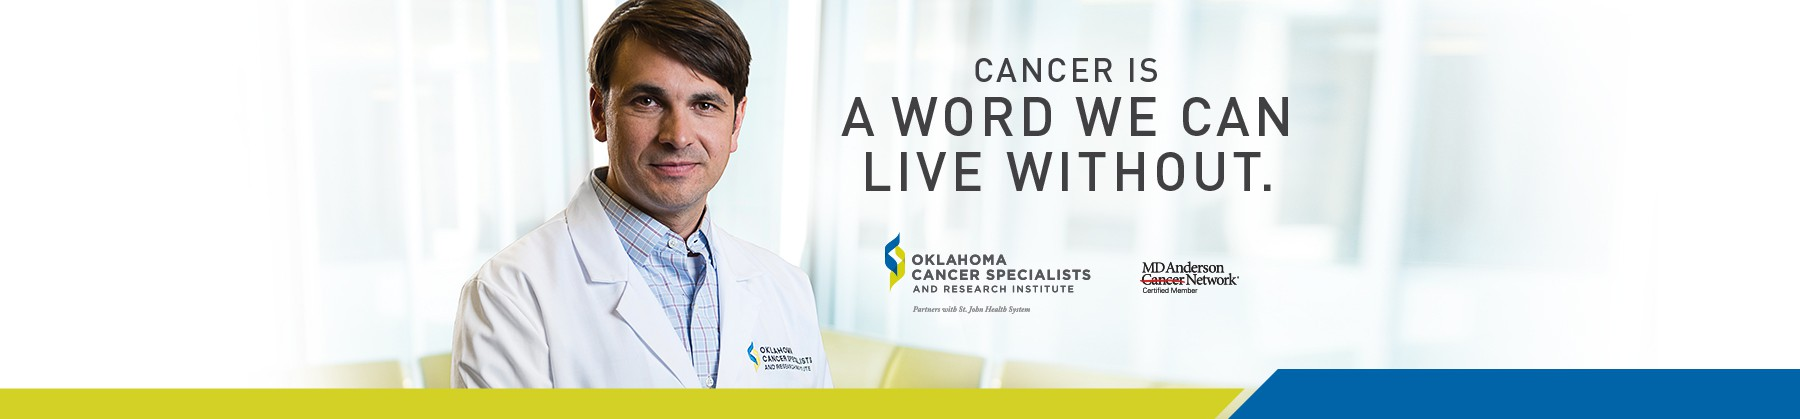 Cancer Is a Word We Can Live Without